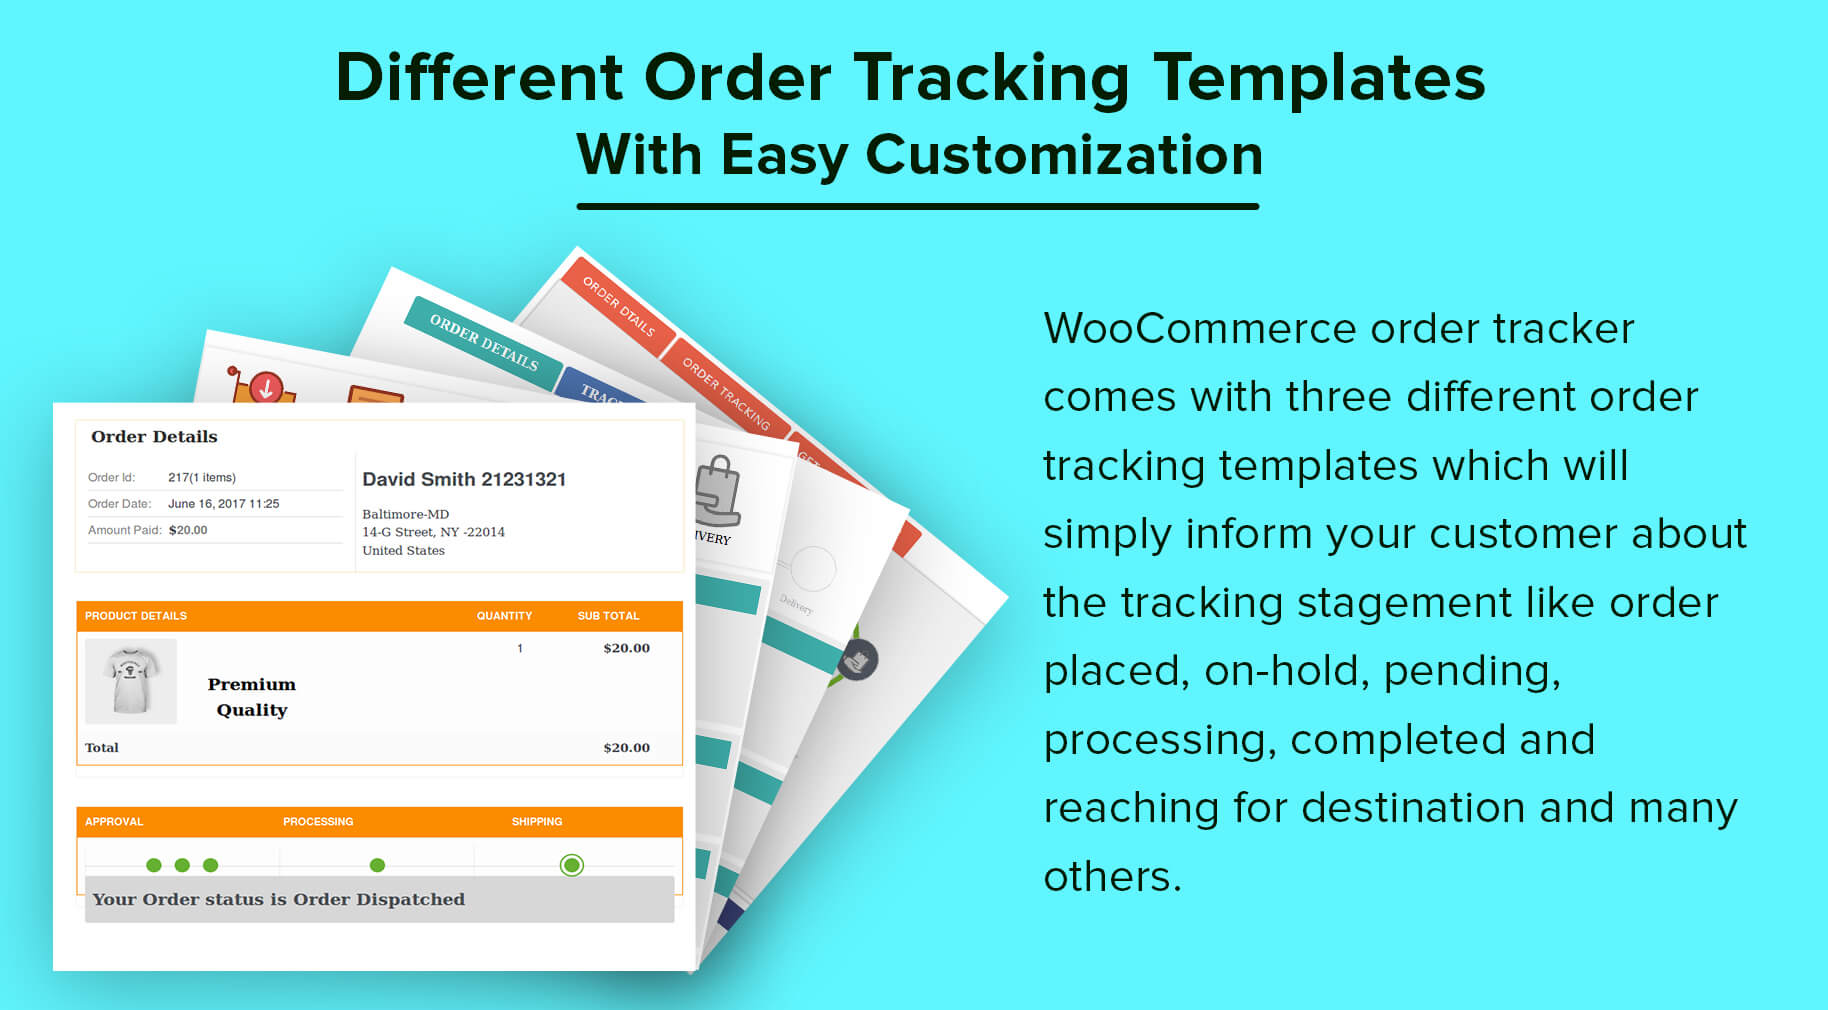 Different Order Tracking Templates With Easy Customization